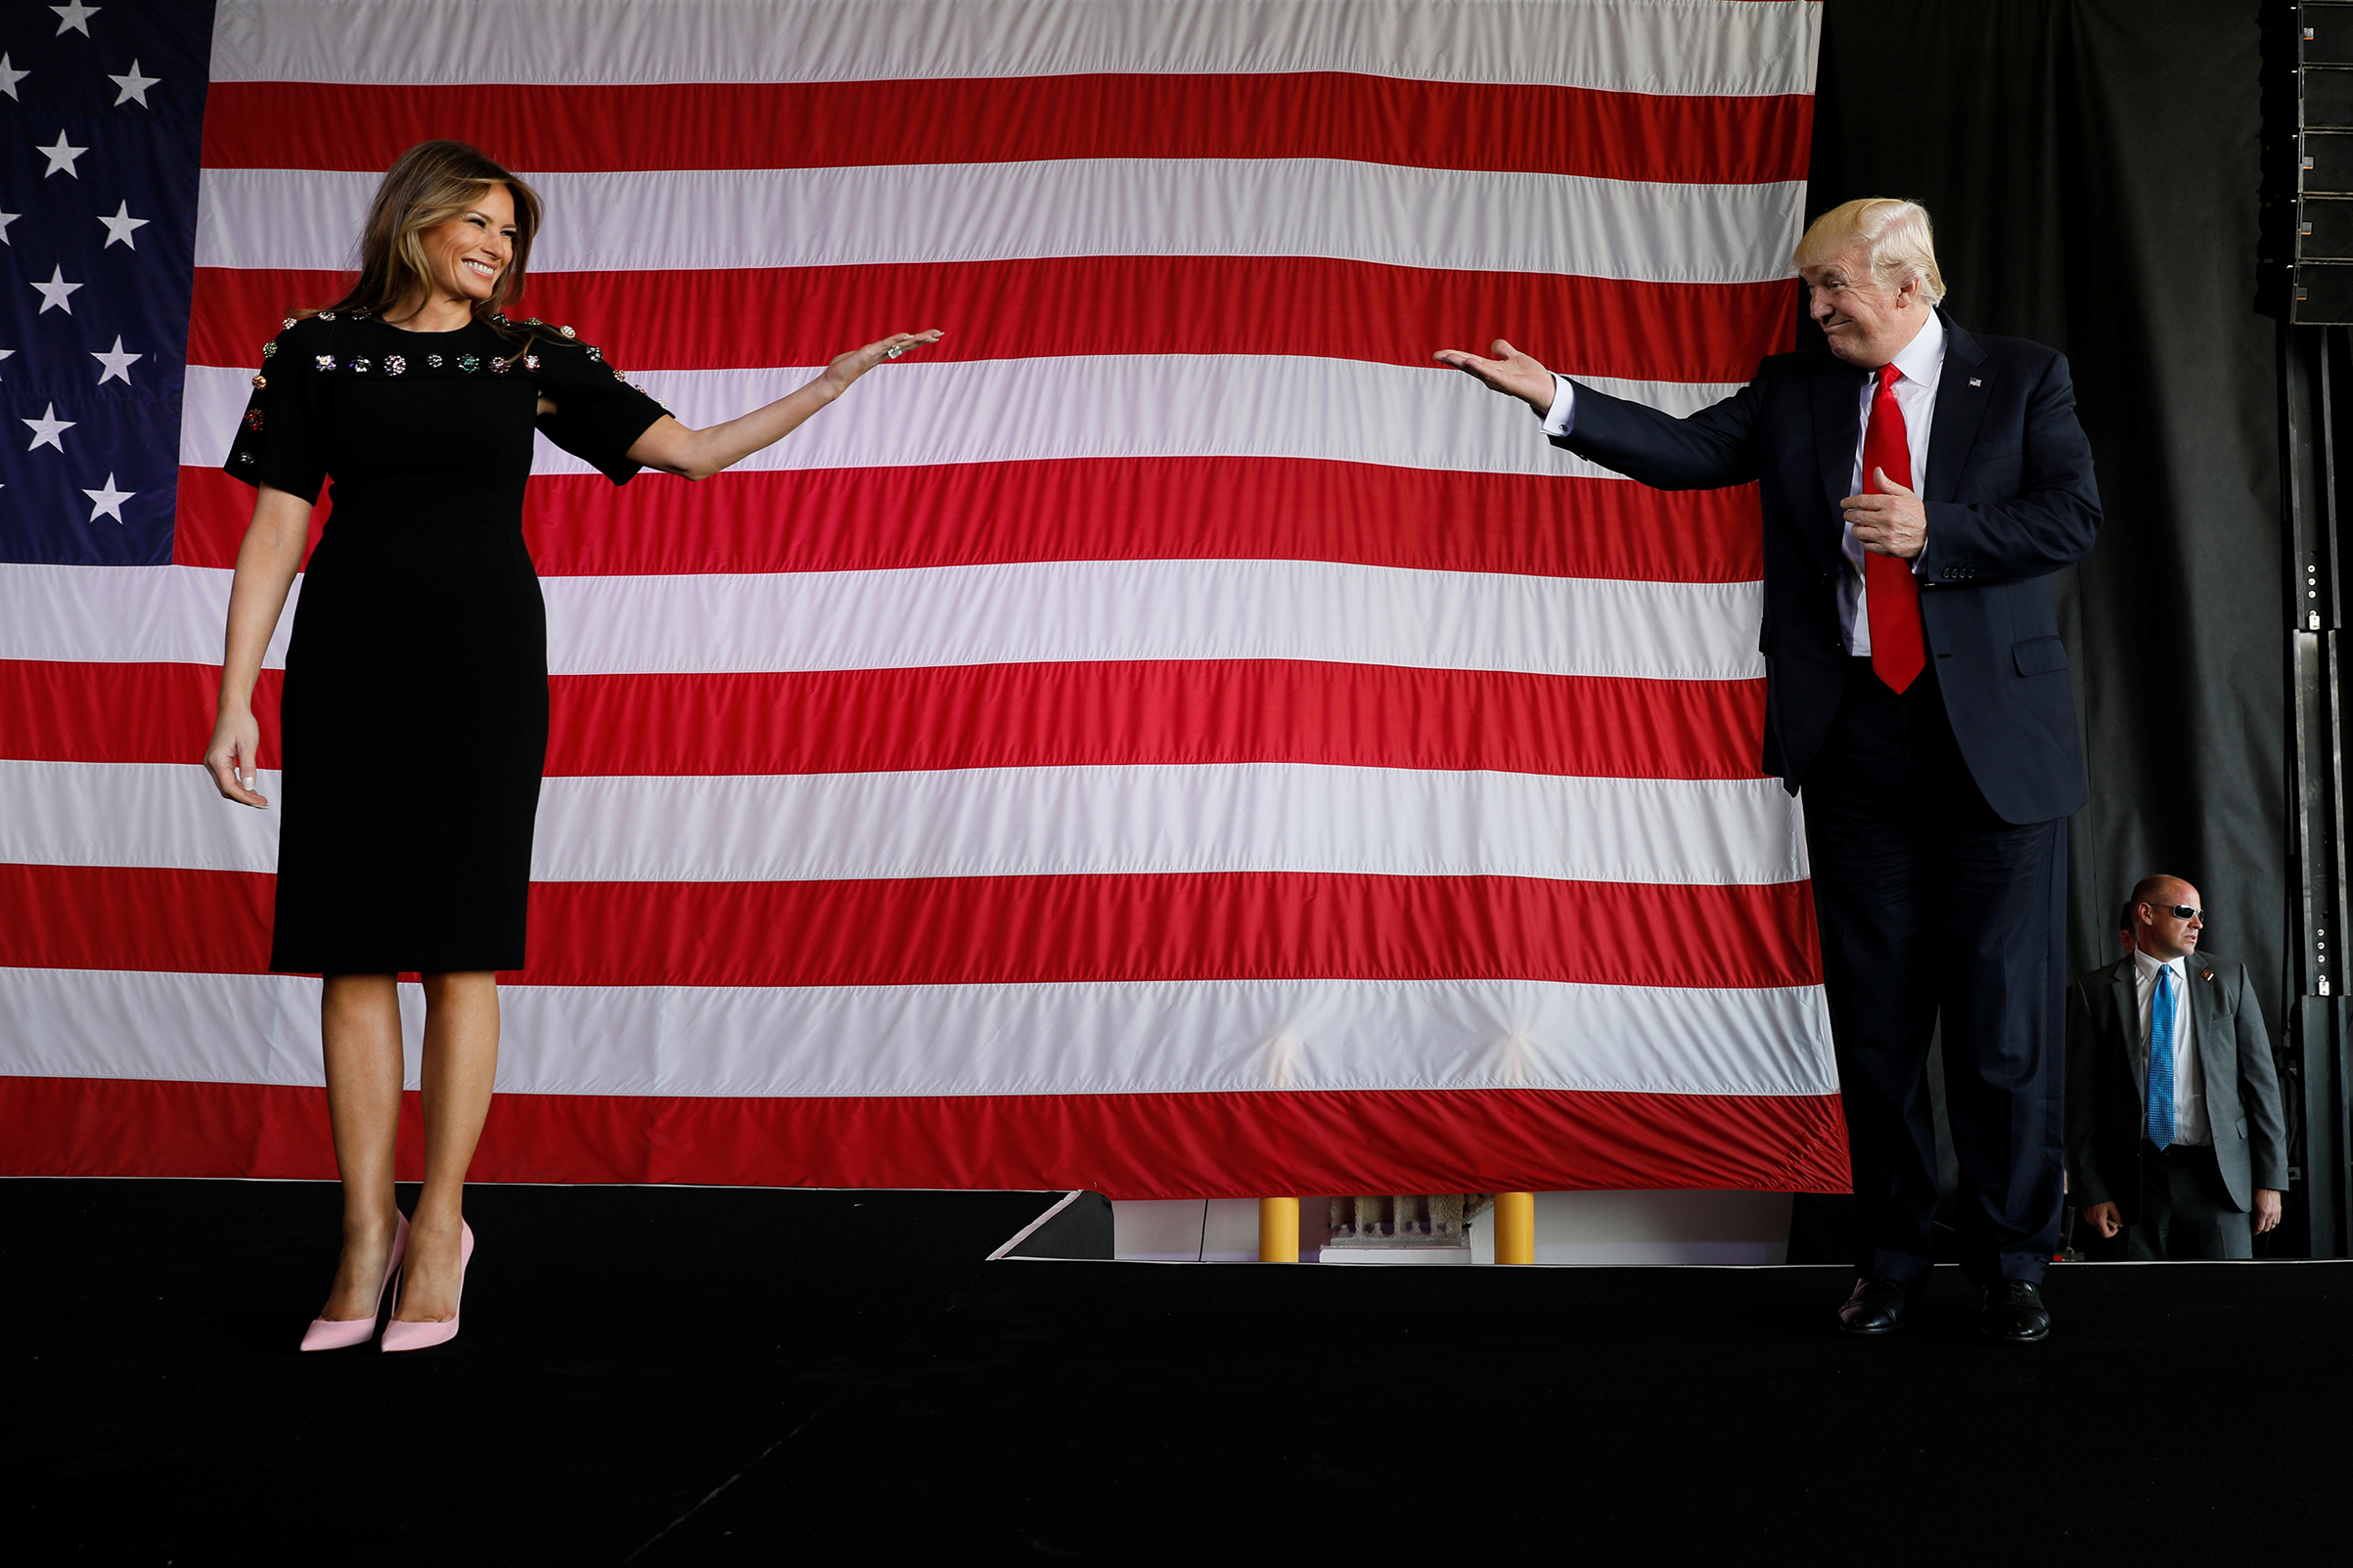 President Donald Trump and first lady Melania Trump wearing Dolce & Gabbana's dress and Christian Louboutin pink pumps, take the stage to rally with service members at Sigonella Air Force Base at Naval Air Station Sigonella at the end of Trump's participation in the G7 summit in Sicily, Italy May 27, 2017.